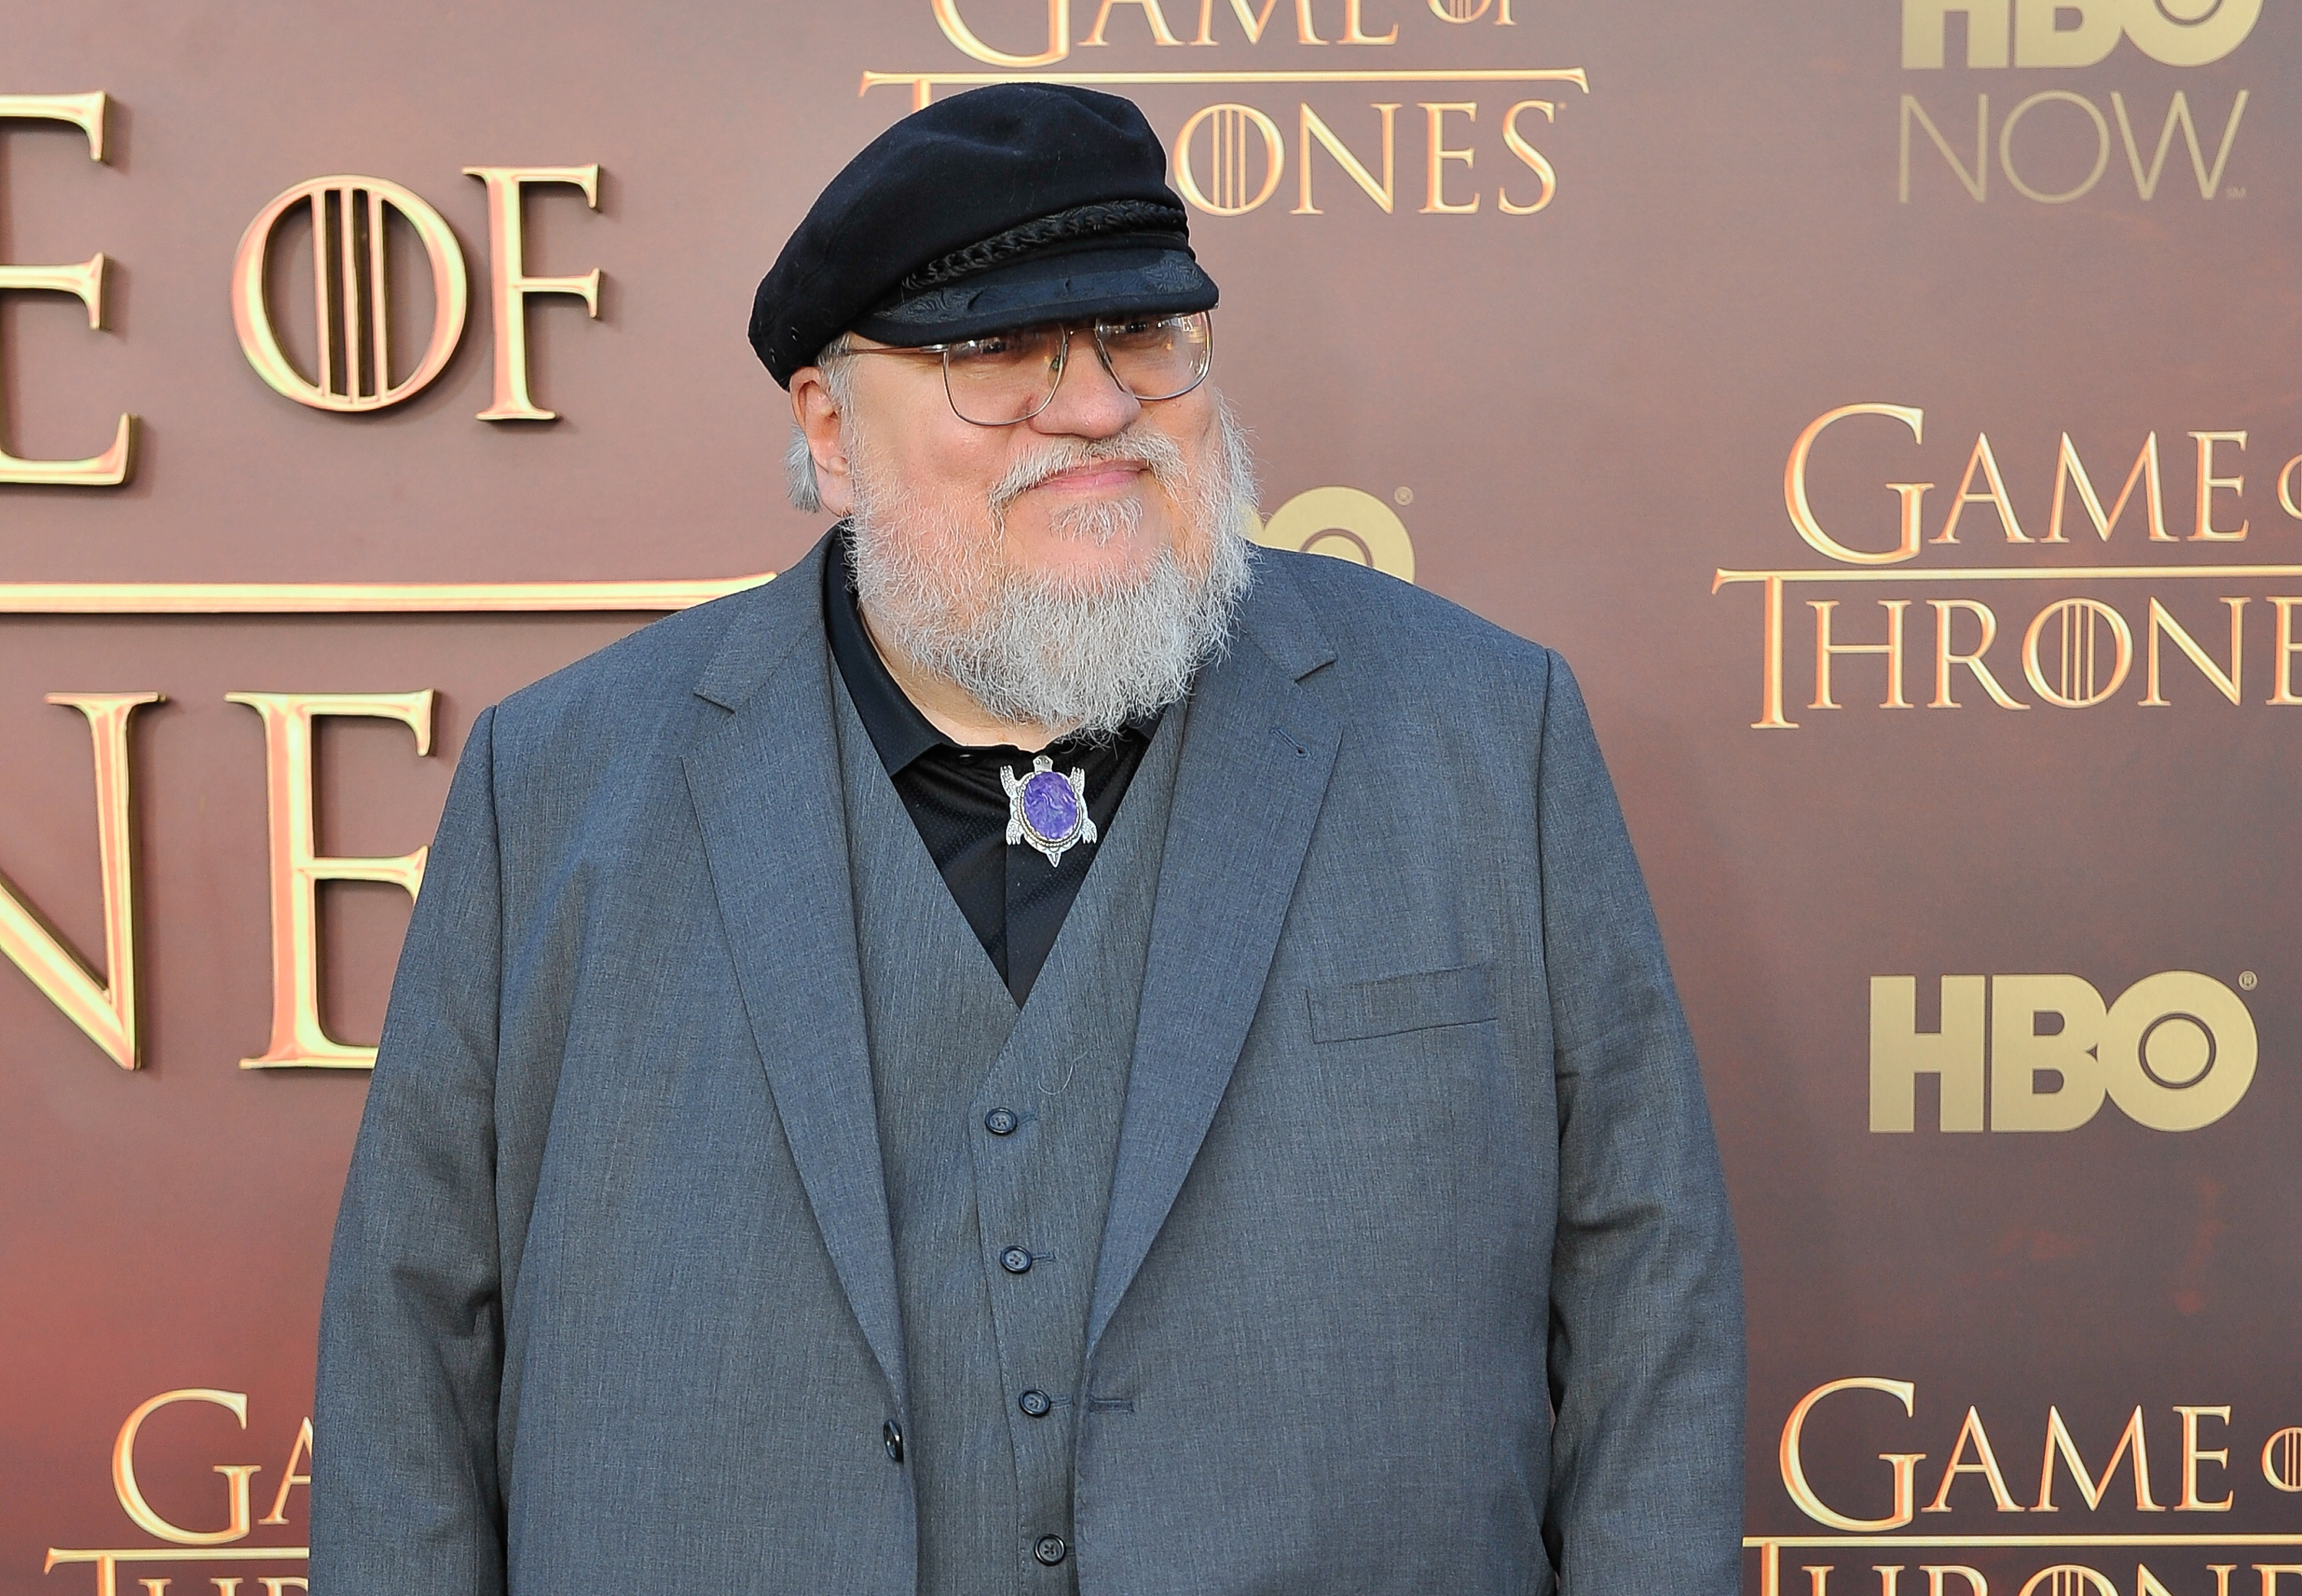 We can all go home, George R. R. Martin just won the internet today